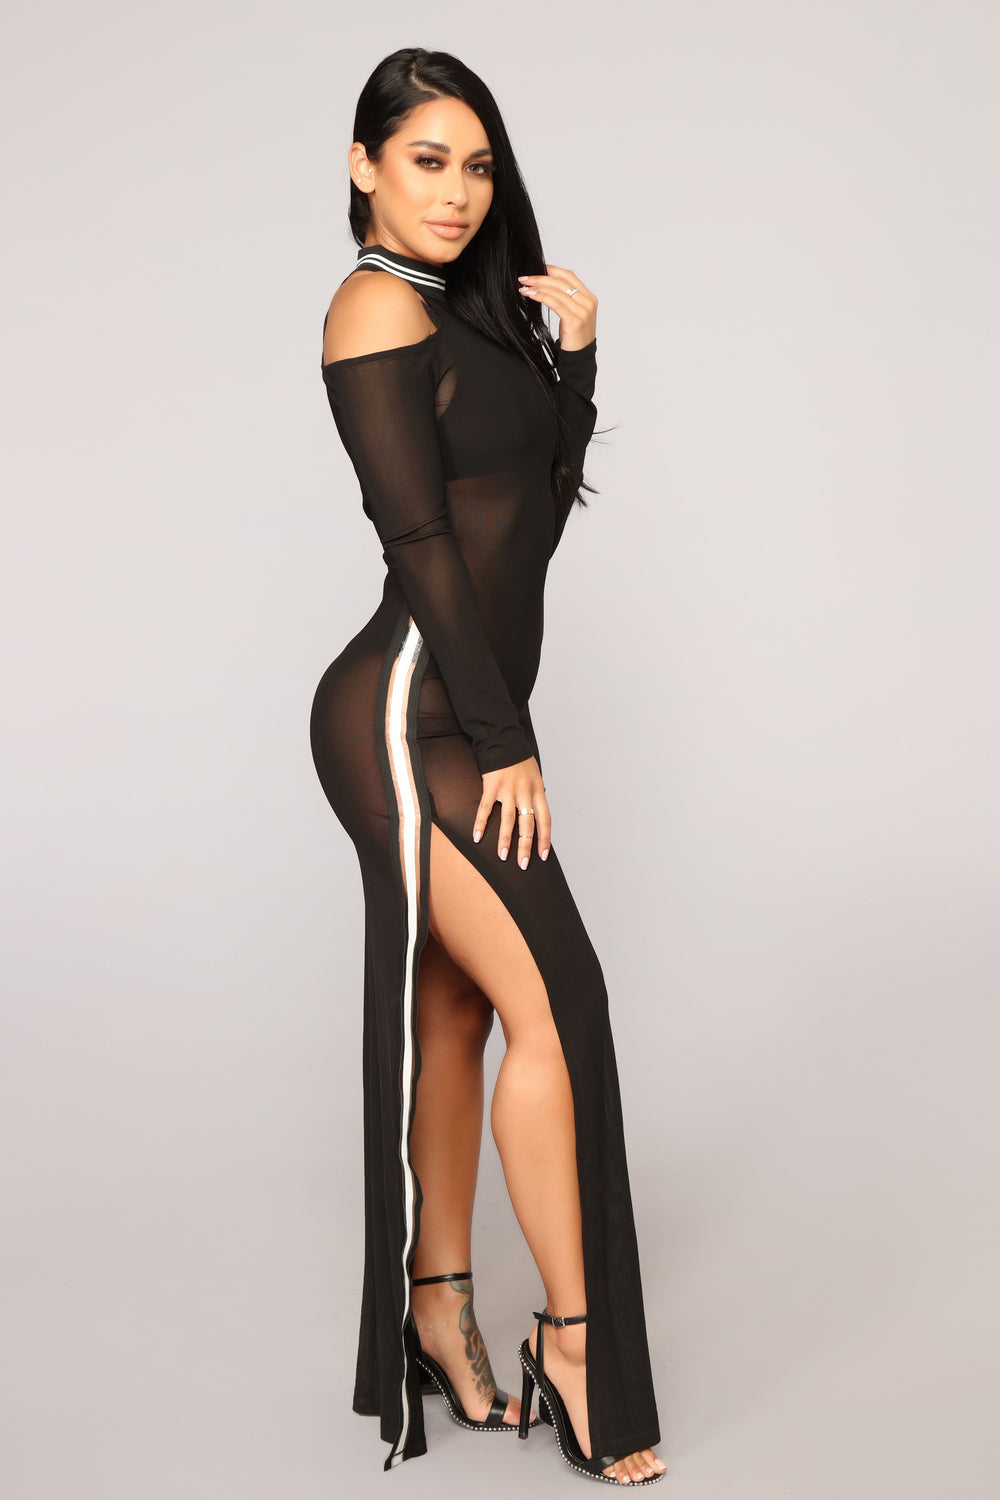 Don't Hate The Player Mesh Dress - Black